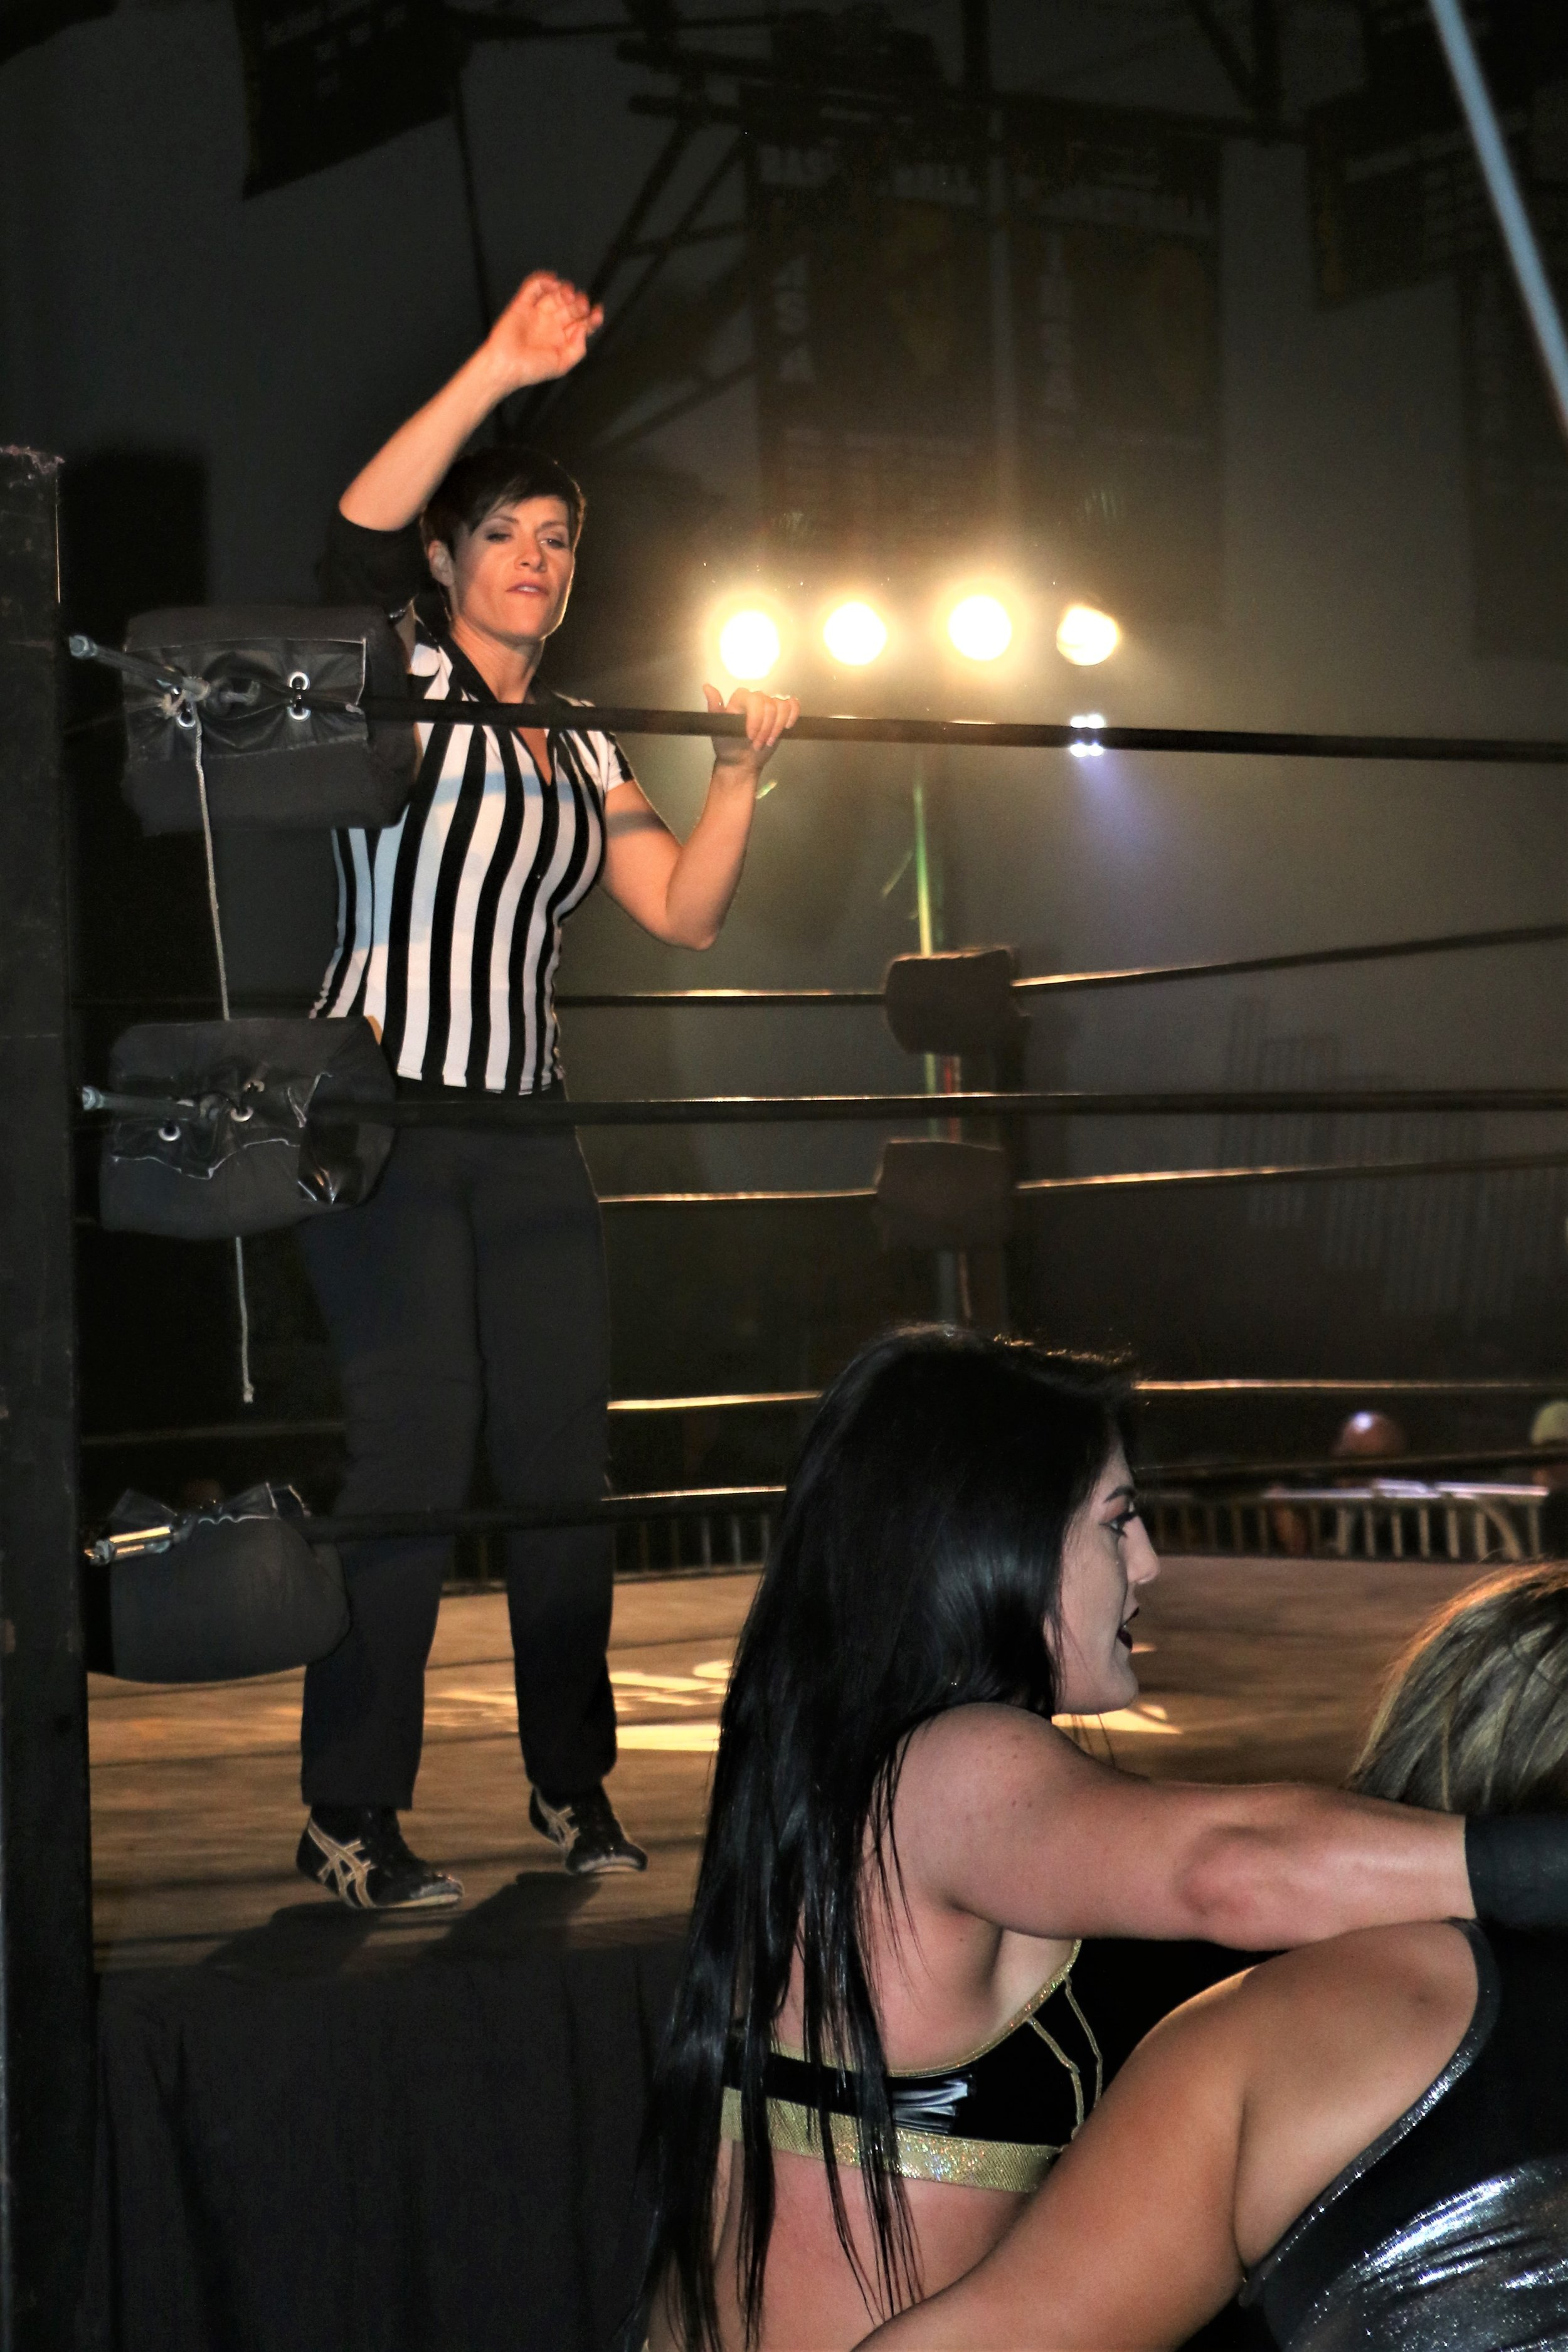 Special referee Molly Holly makes the count on Tessa Blanchard and Jordynne Grace.